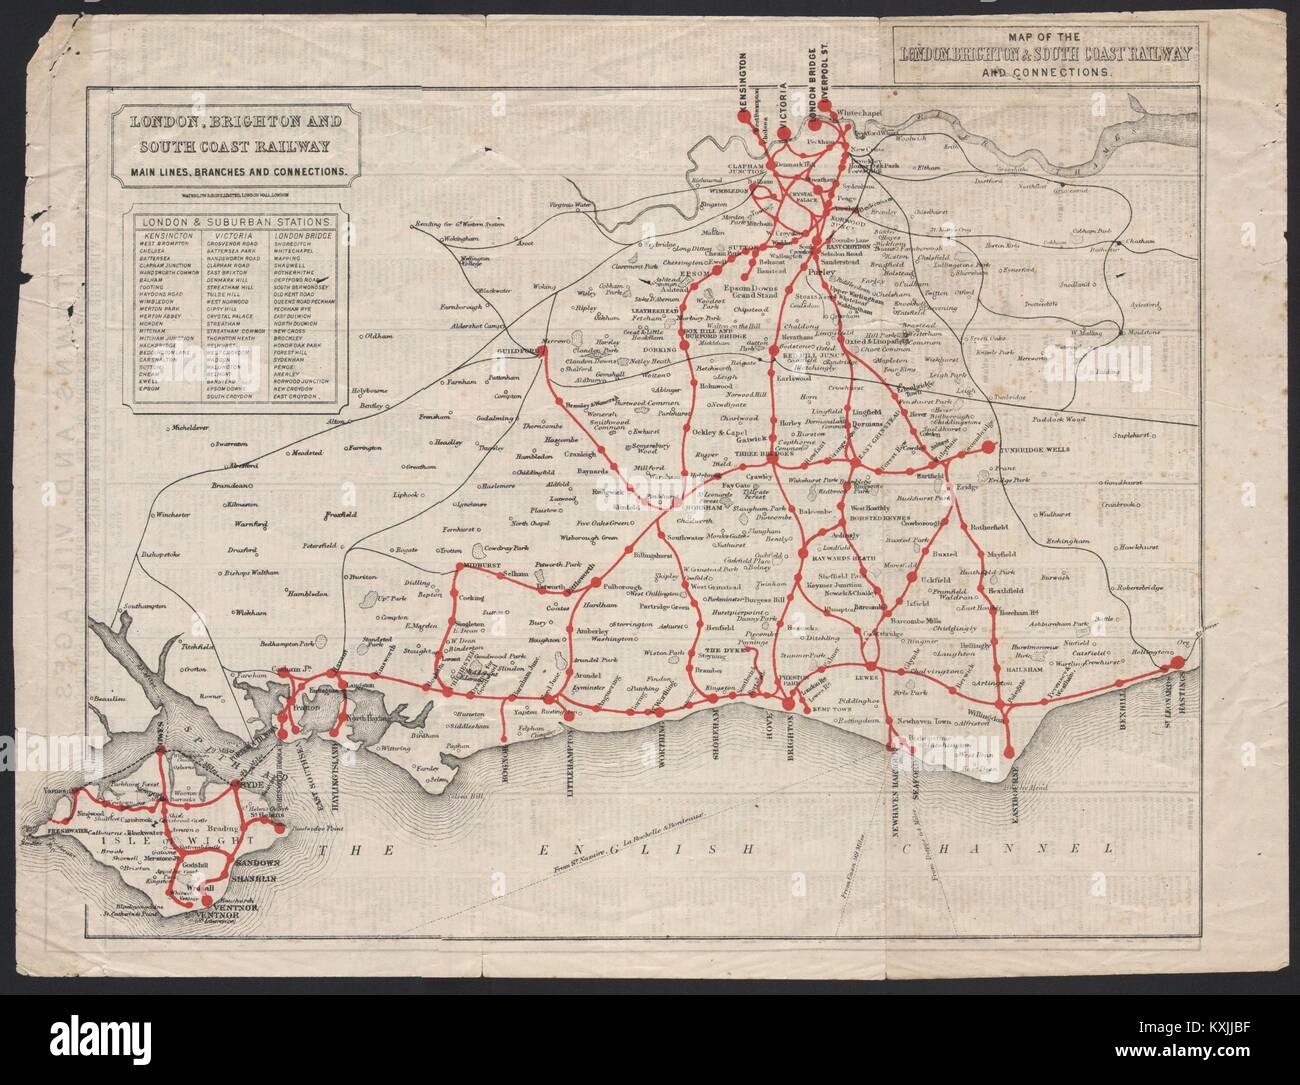 map of the london brighton south coast railway and connections c1910